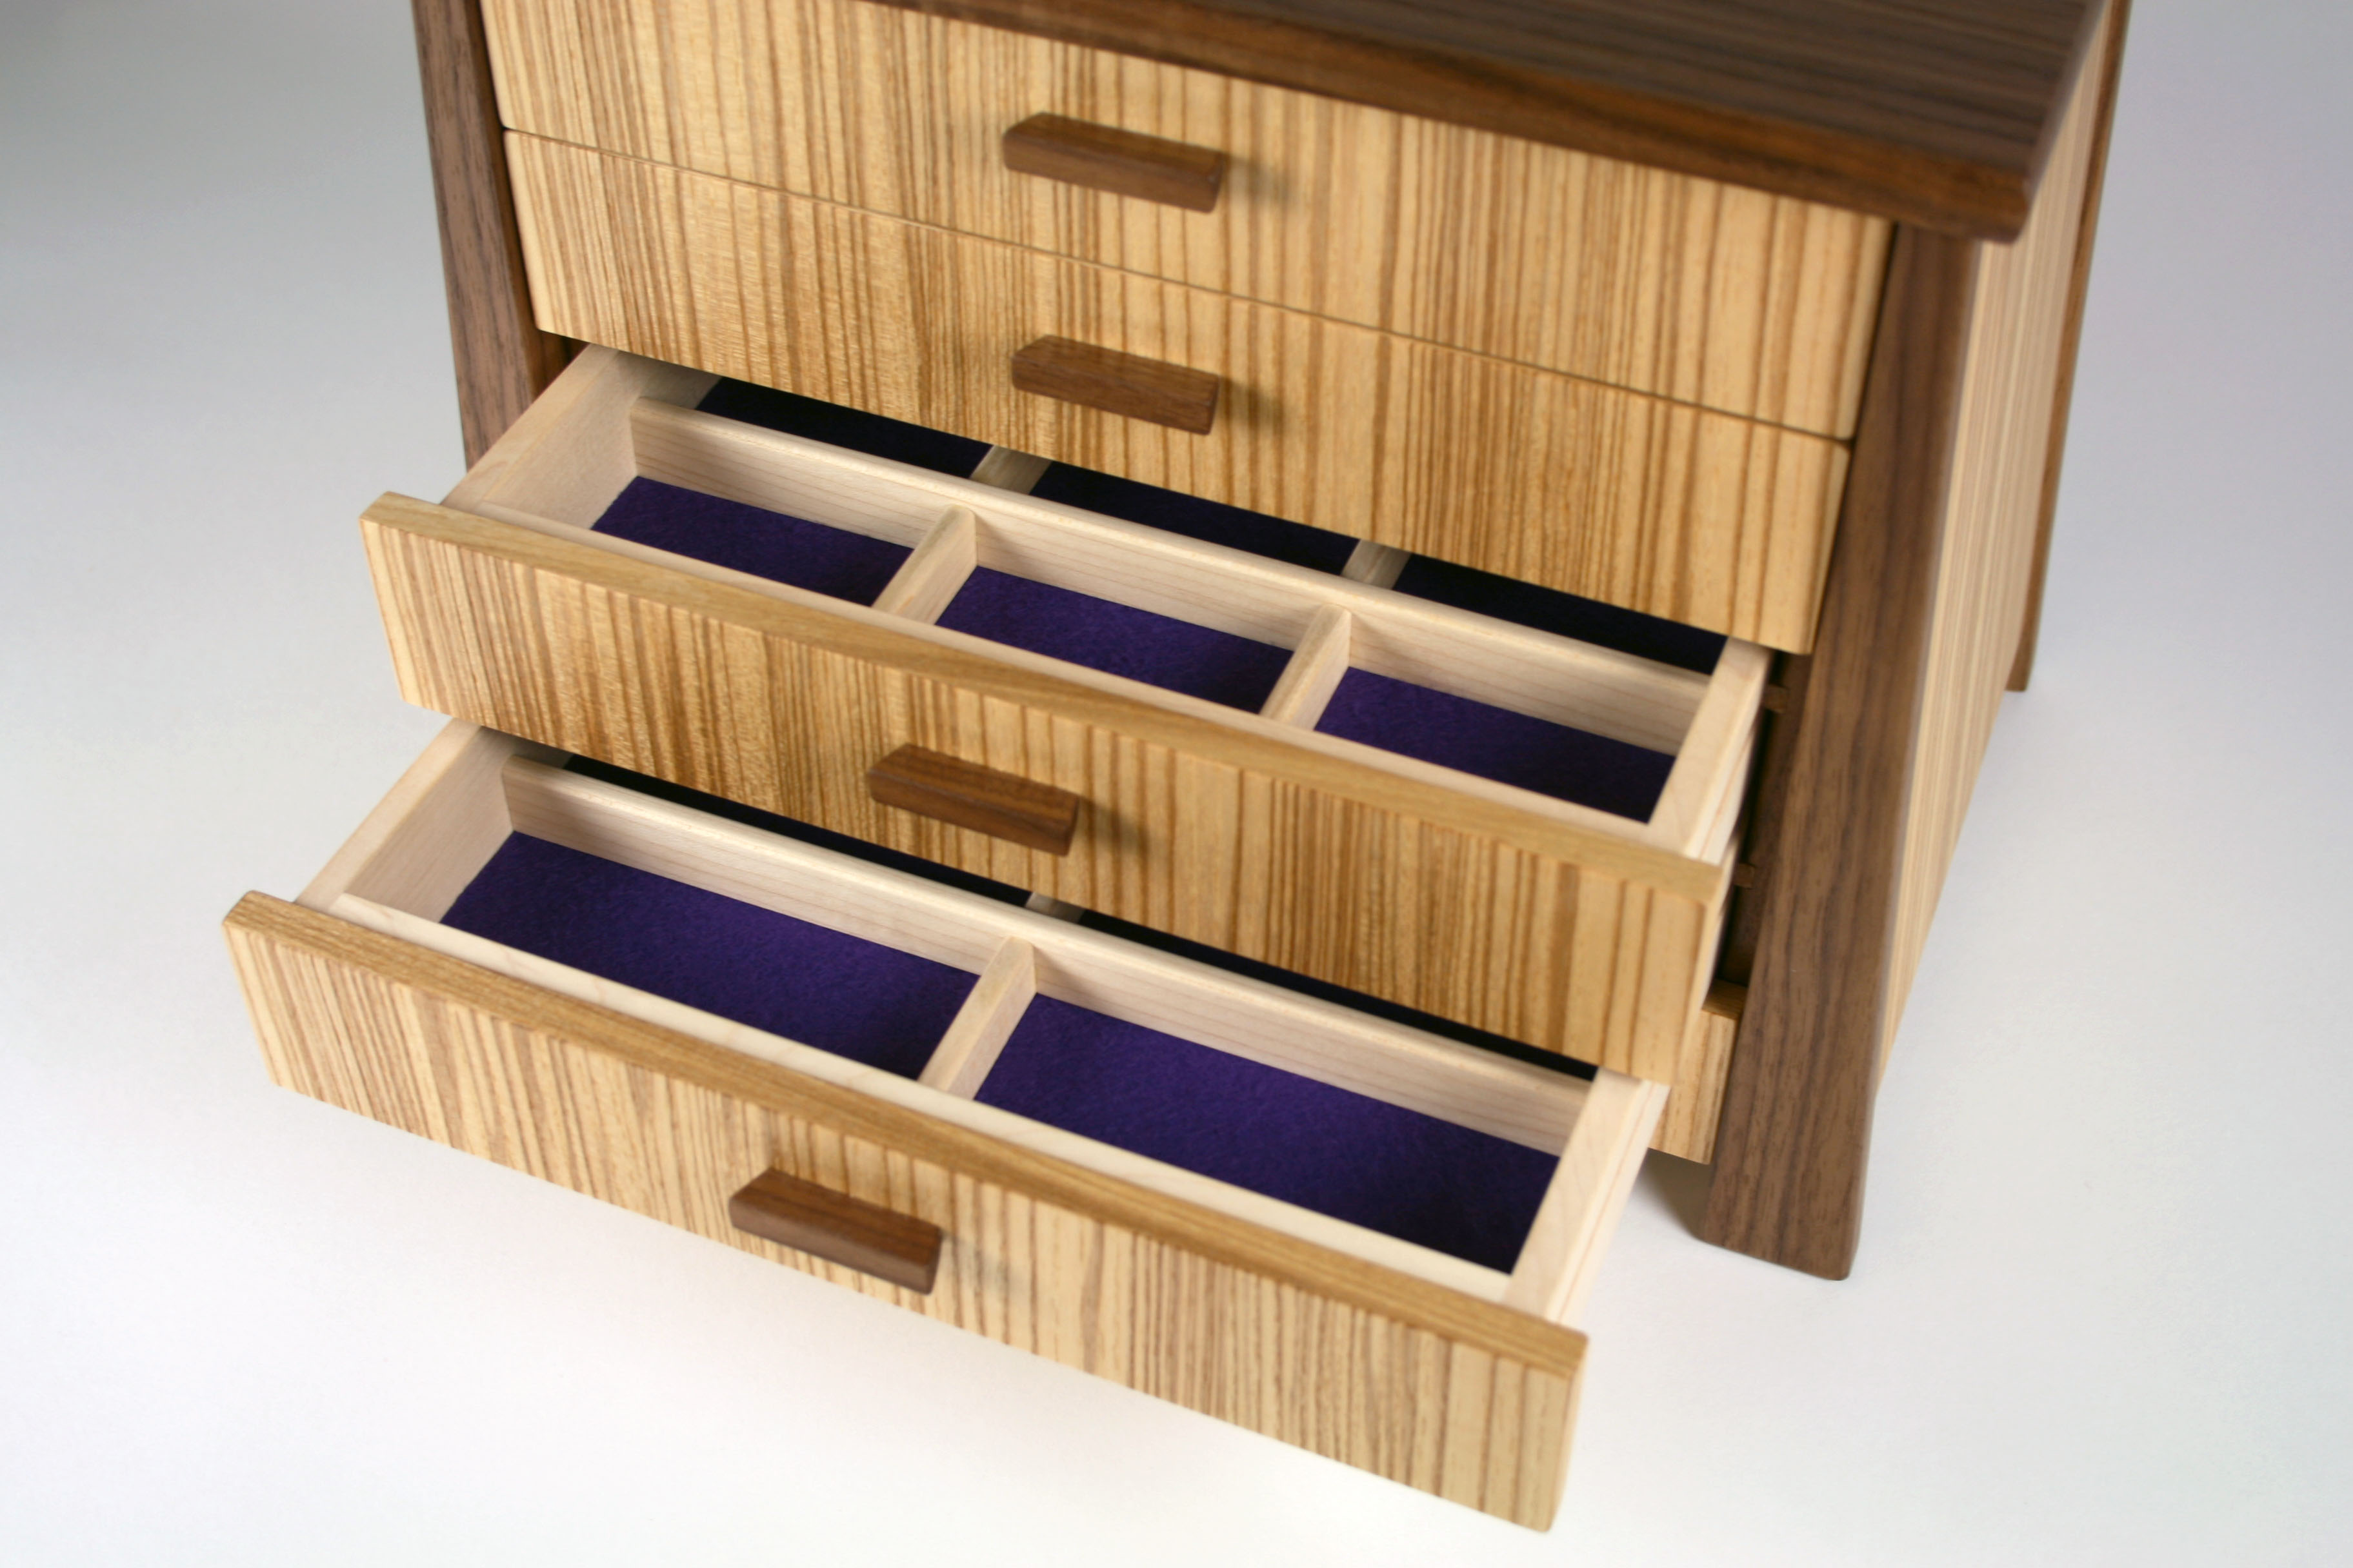 Jewellery chest with drawers open